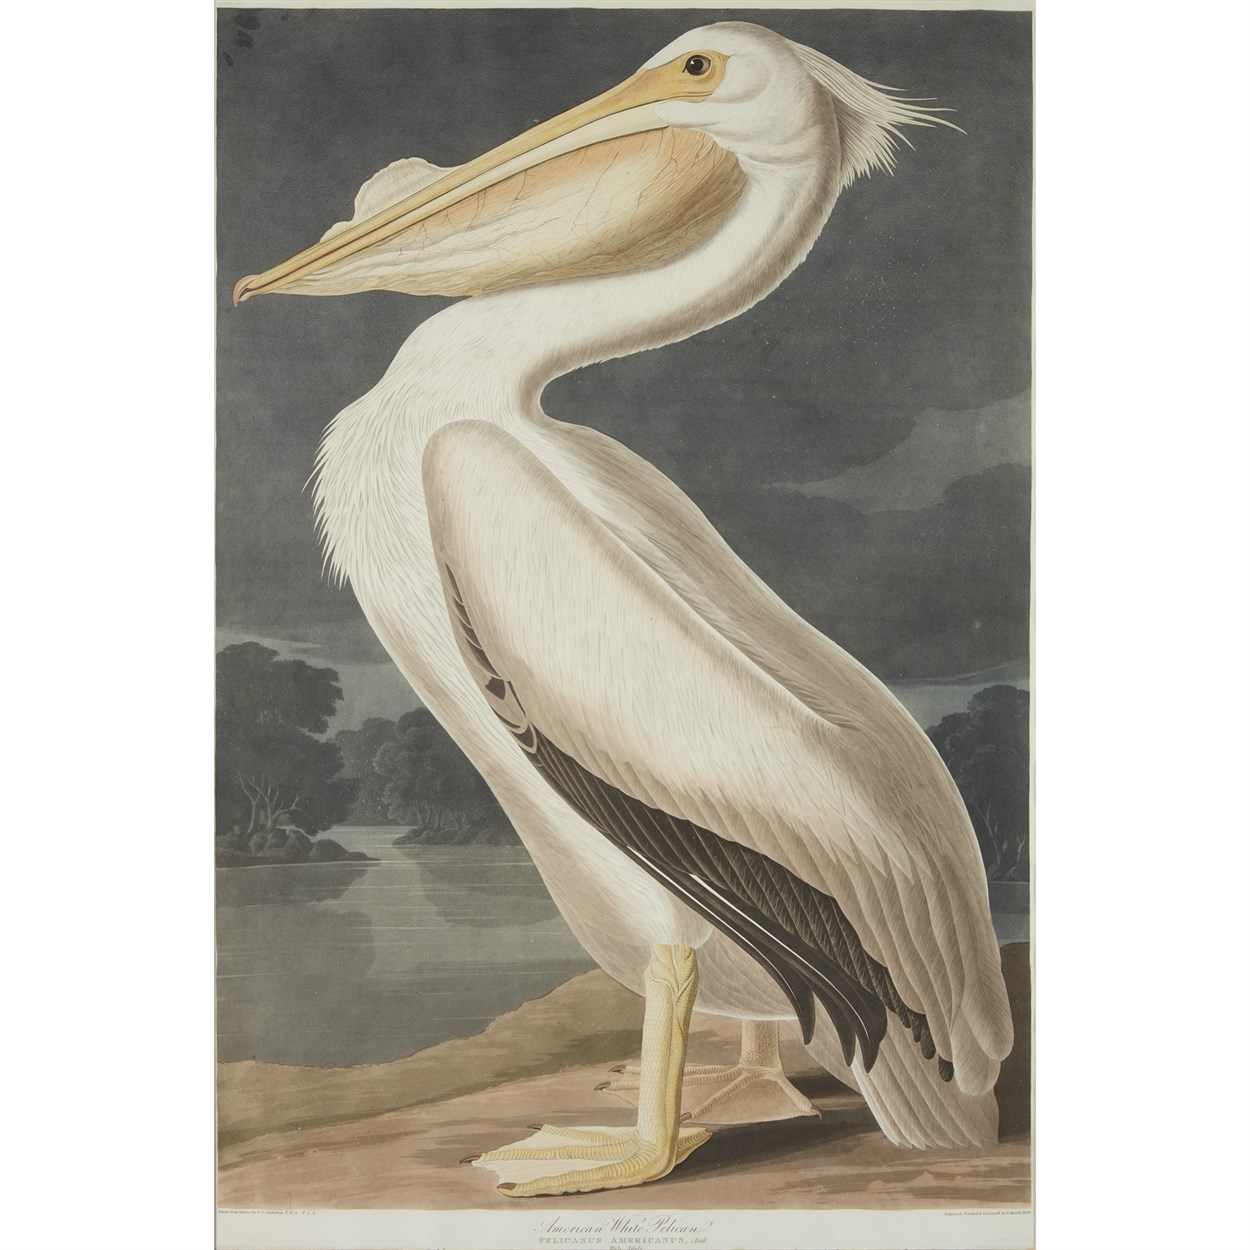 Lot 438 - [Prints] Audubon, John James